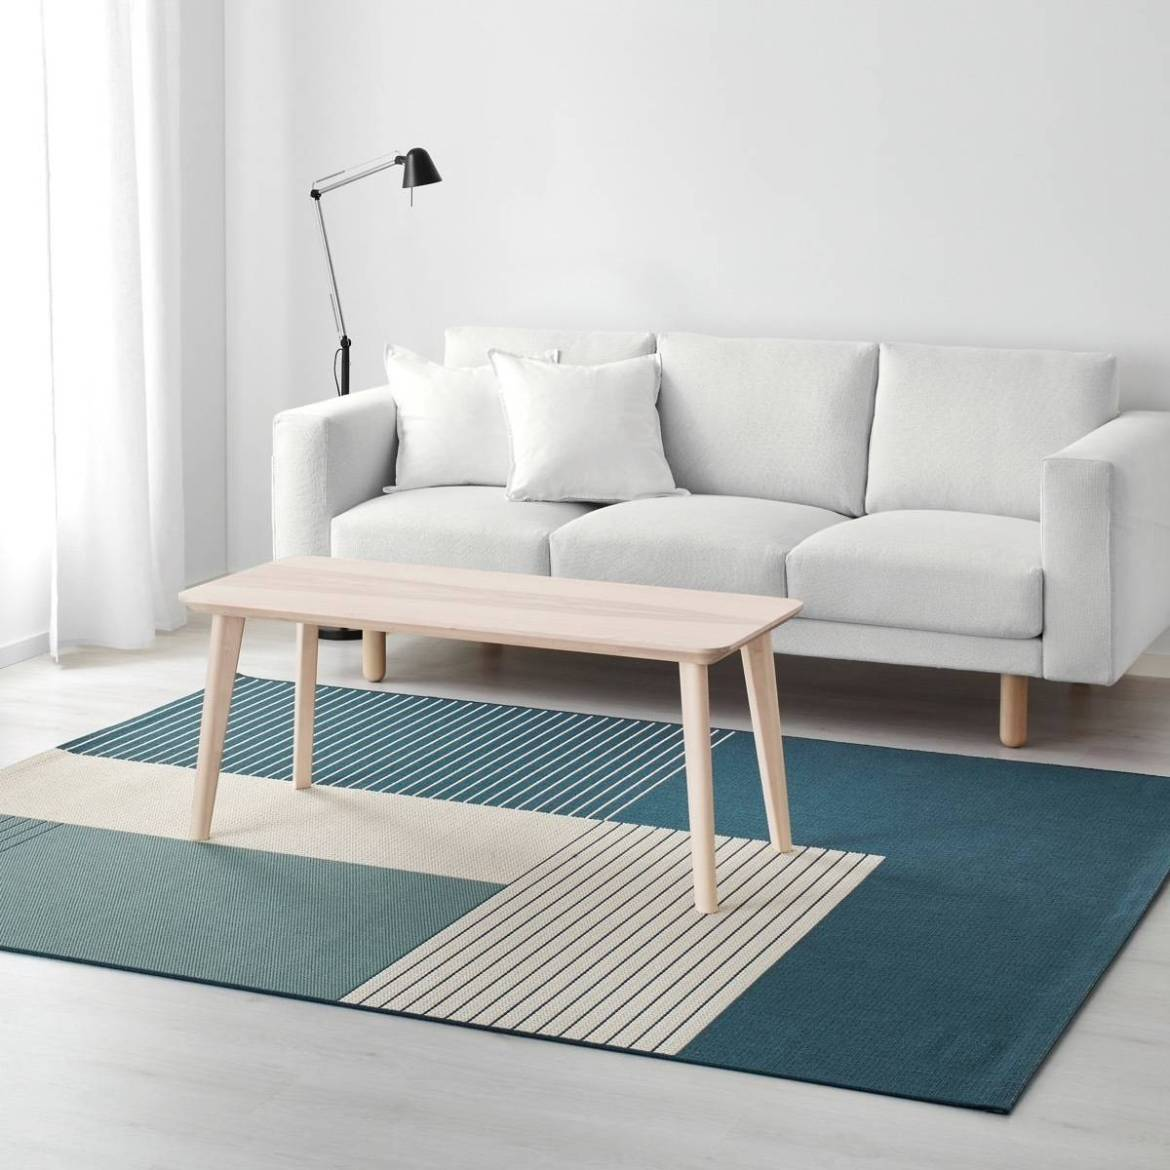 ROSKILDE rug from IKEA